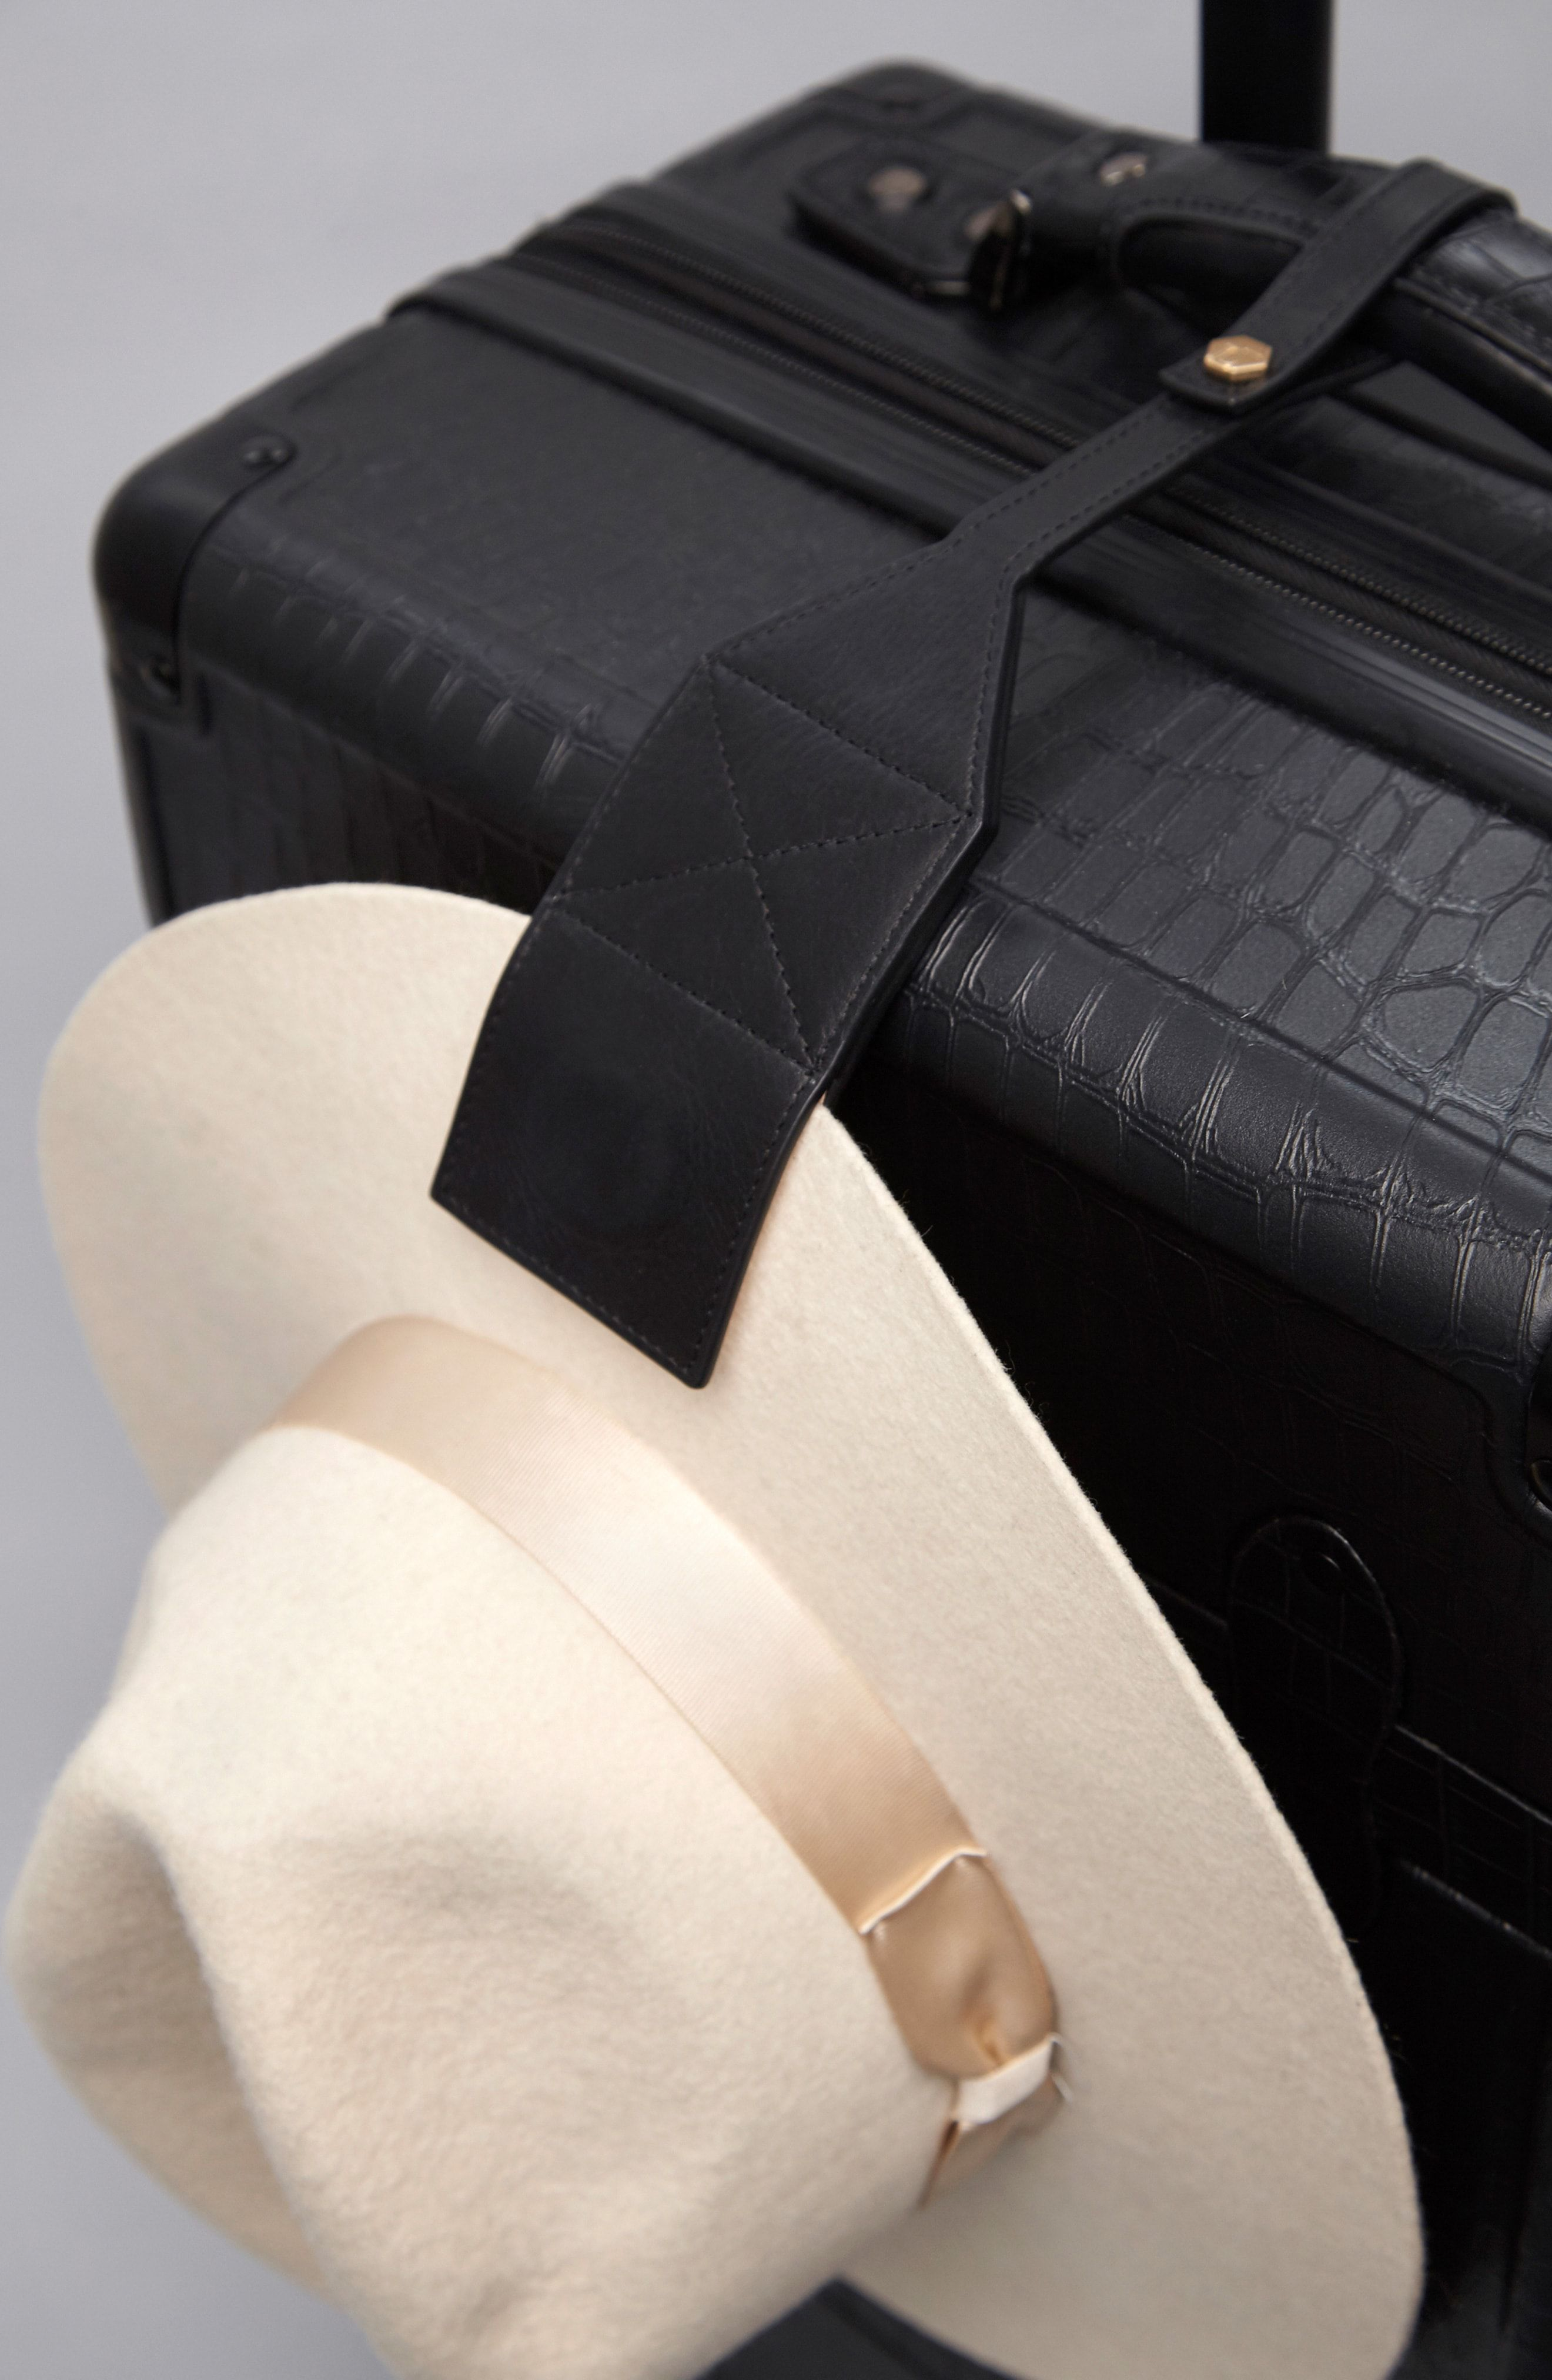 Toptote Luggage Tag Hat Clip Available At Nordstrom Leather Hats Hat Clips Luggage Tags